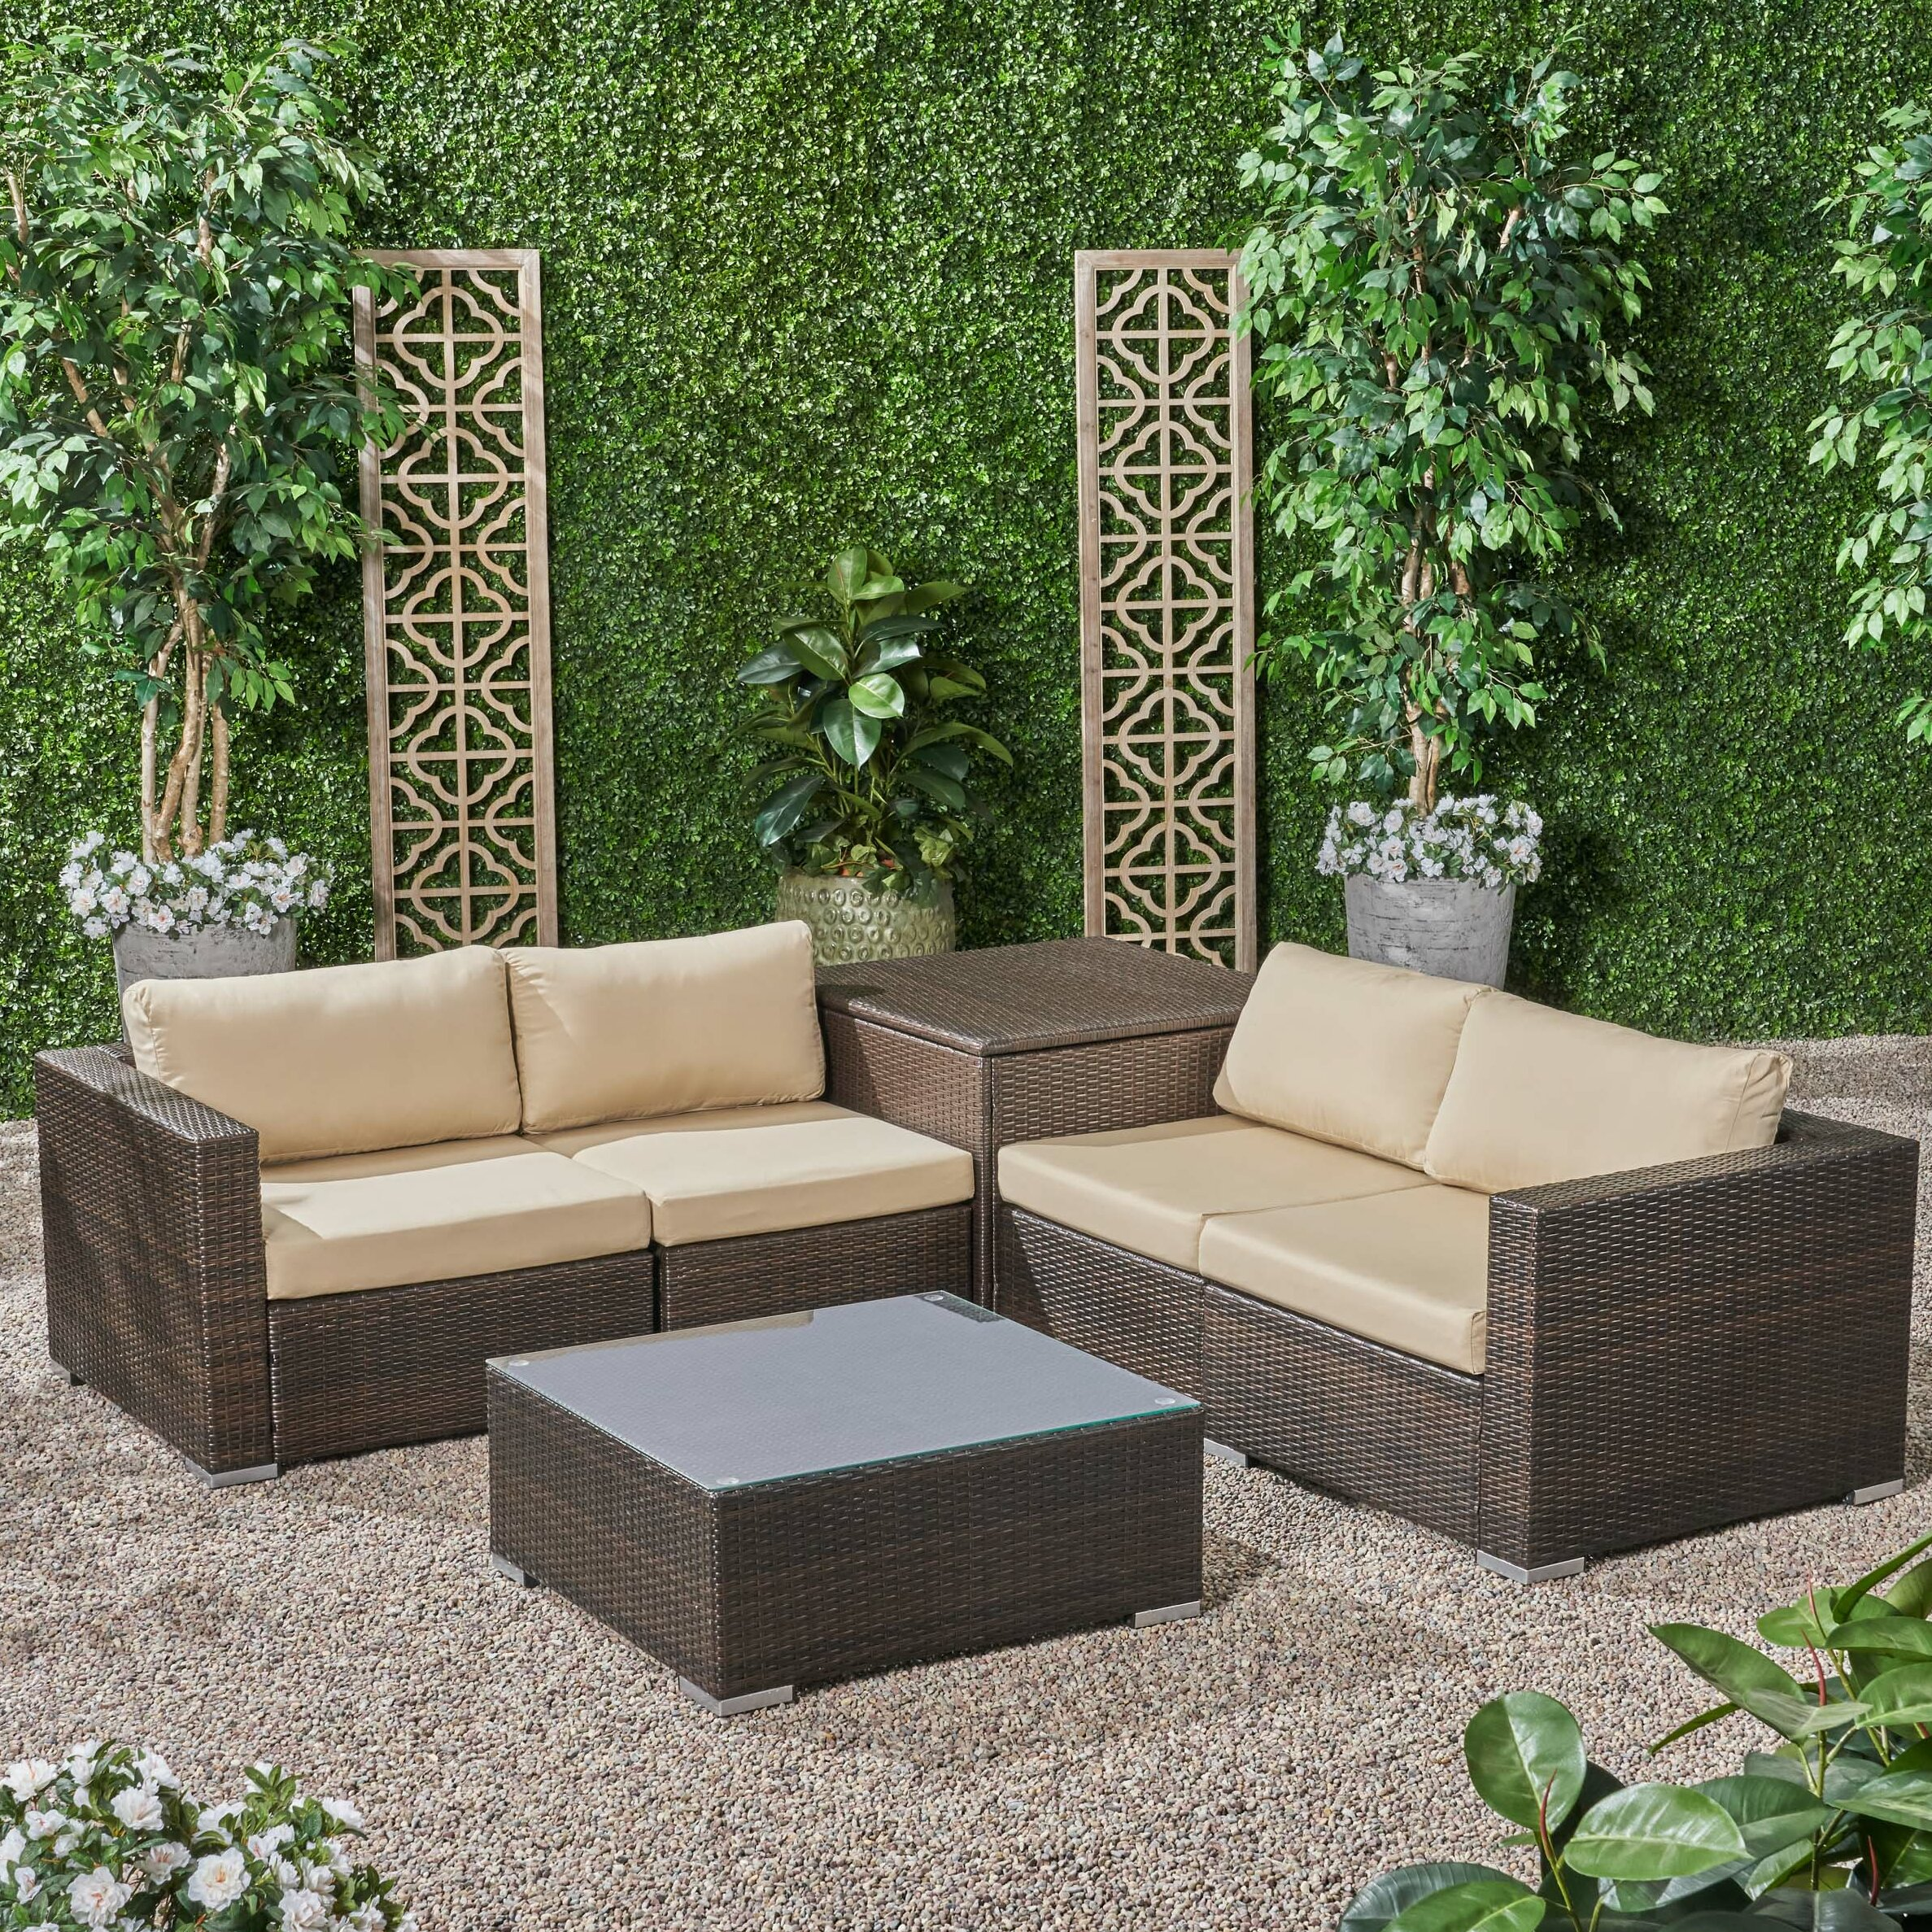 Swell Roxann Outdoor 4 Seater Wicker Sofa Set With Storage Ottoman And Sunbrella Cushions Ocoug Best Dining Table And Chair Ideas Images Ocougorg